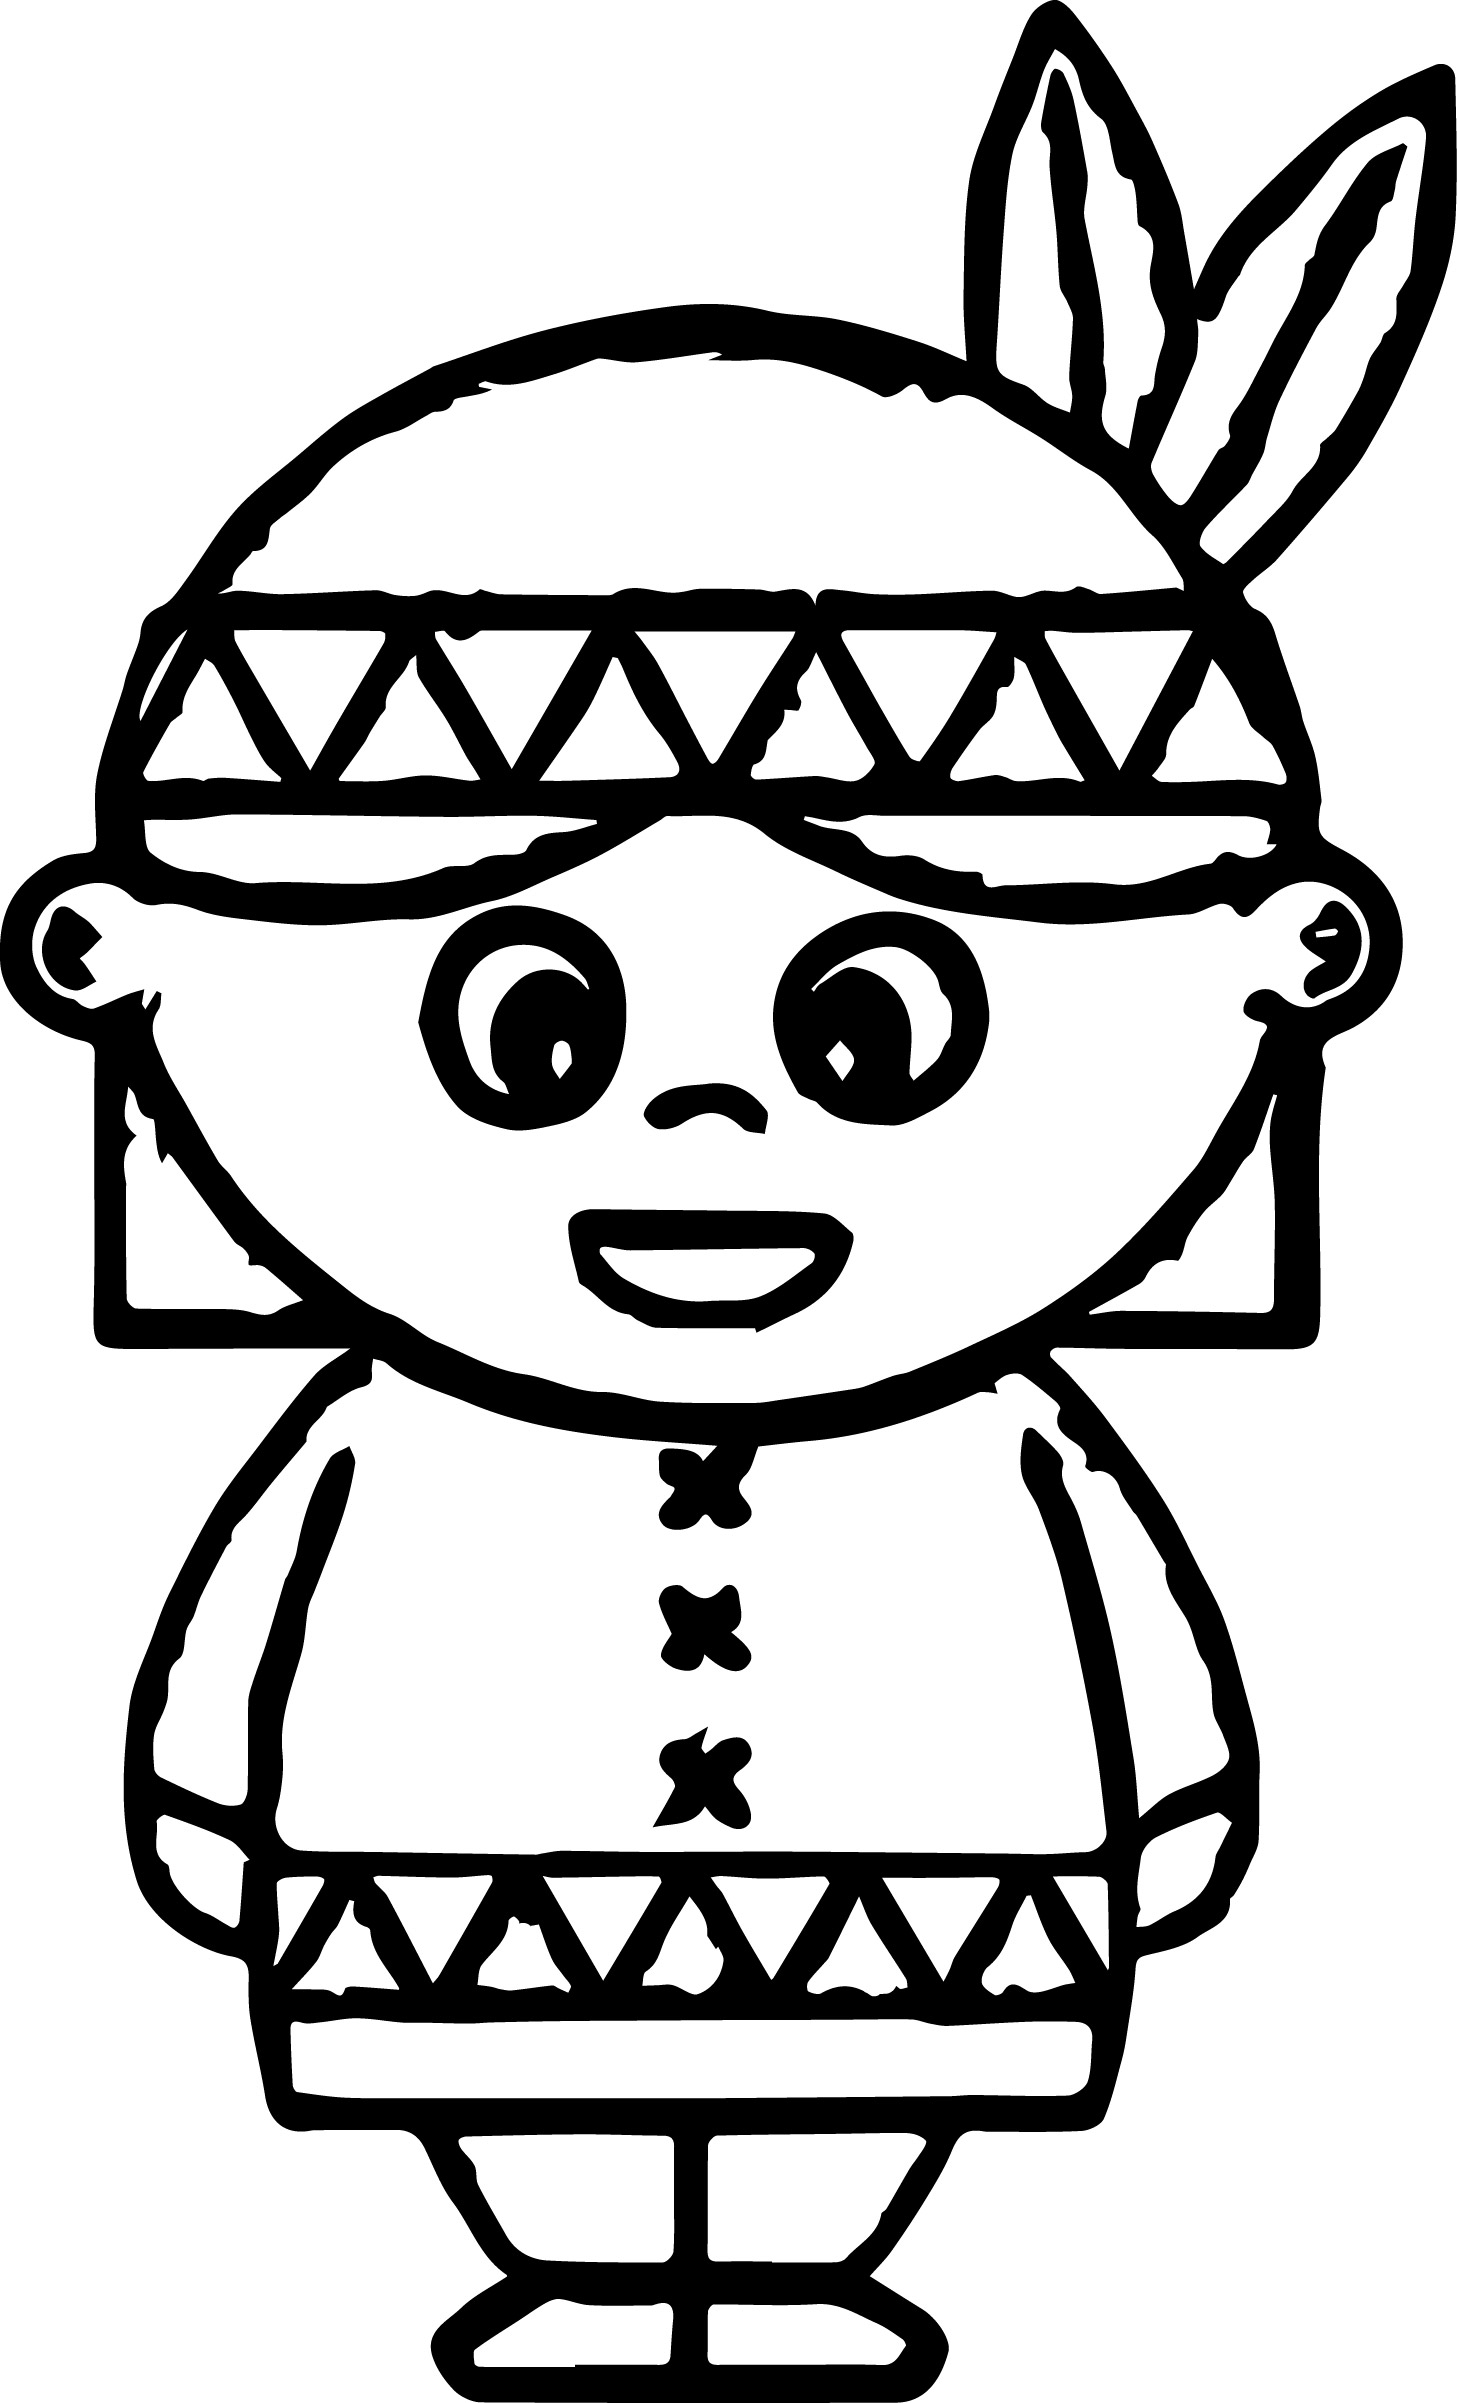 free native american indian coloring pages indigenous woman in a traditional costume coloring page indian native free american coloring pages